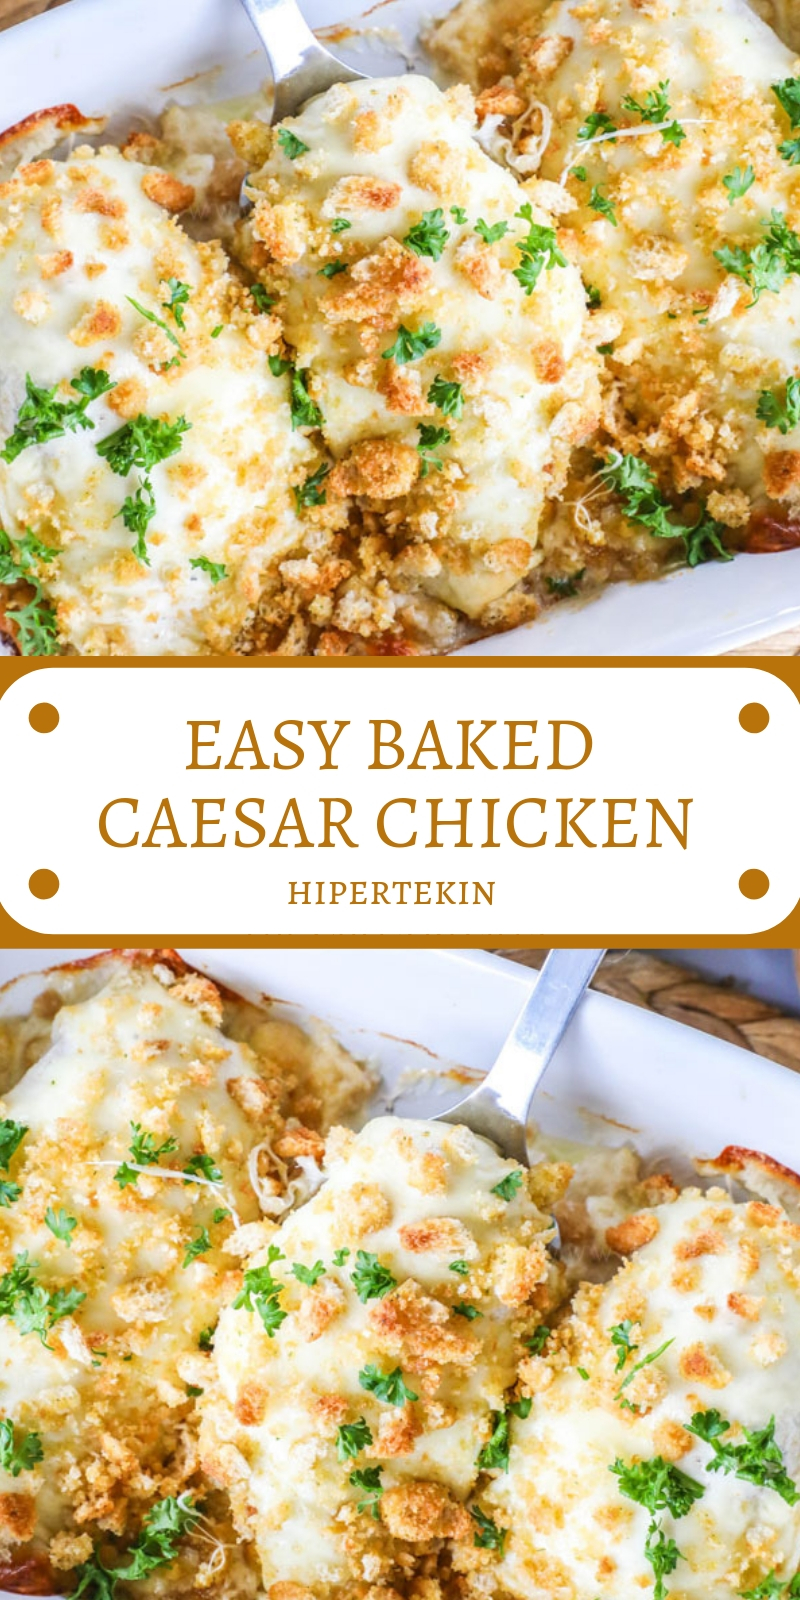 EASY BAKED CAESAR CHICKEN